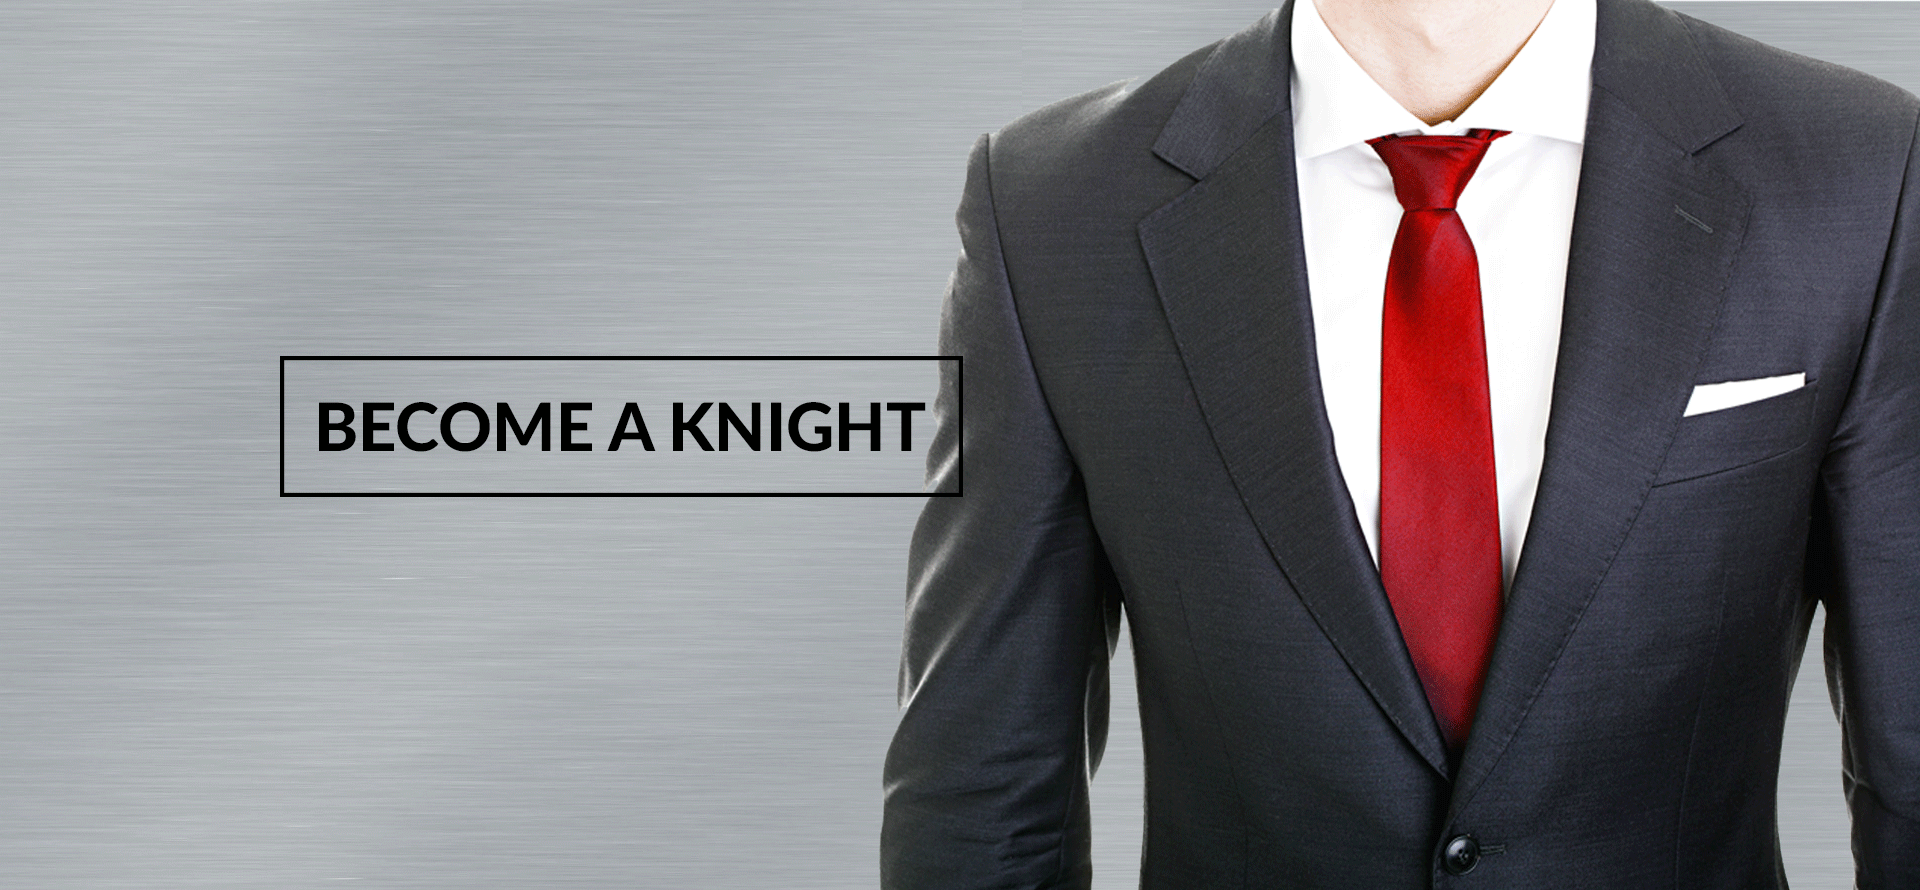 Become-A-Knight1